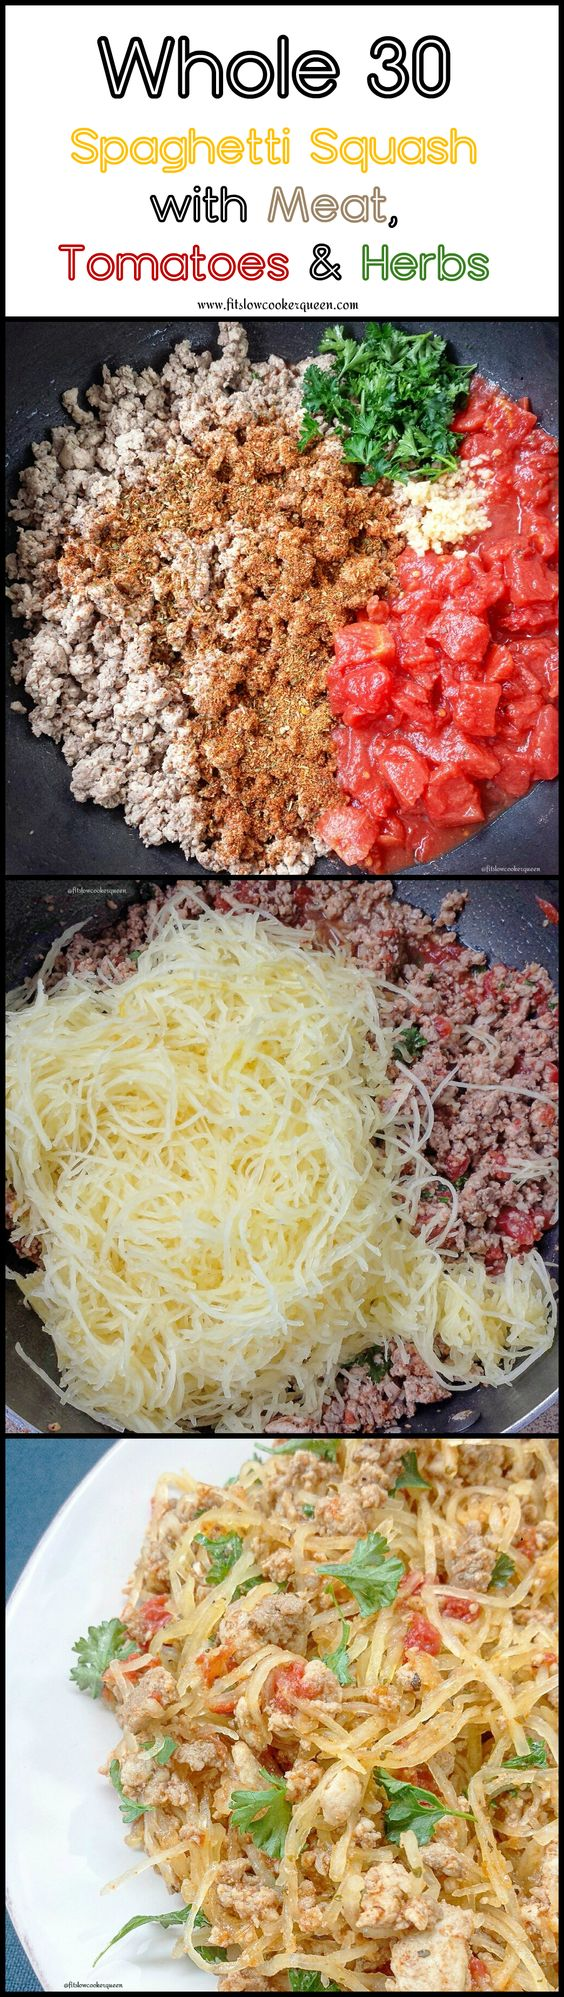 This healthy and simple low-carb, paleo, and whole 30 compliant one-pot meal consists of spaghetti squash, ground meat, diced tomatoes and fresh herbs.